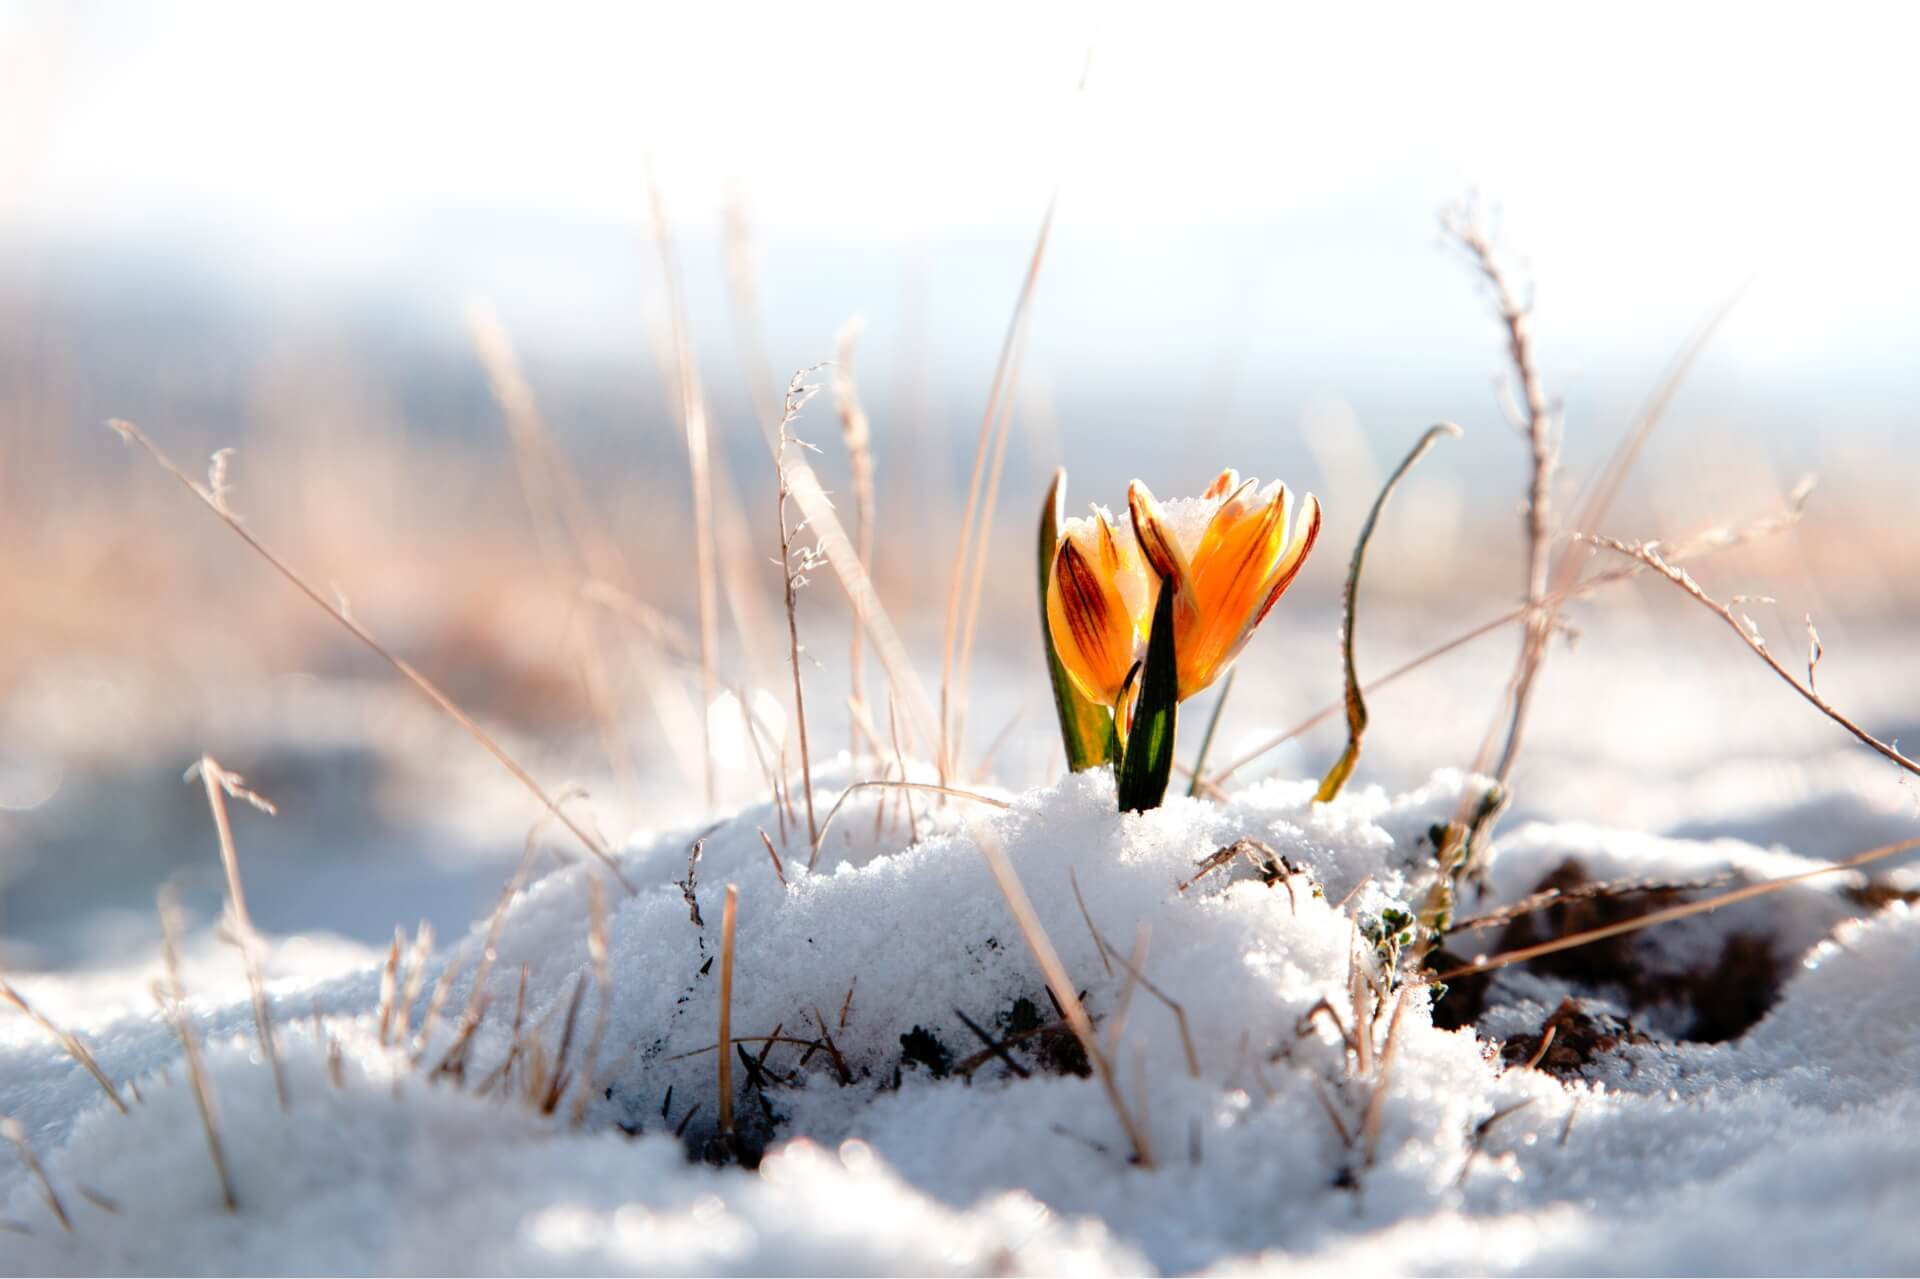 a single flower poking through a layer of melting snow